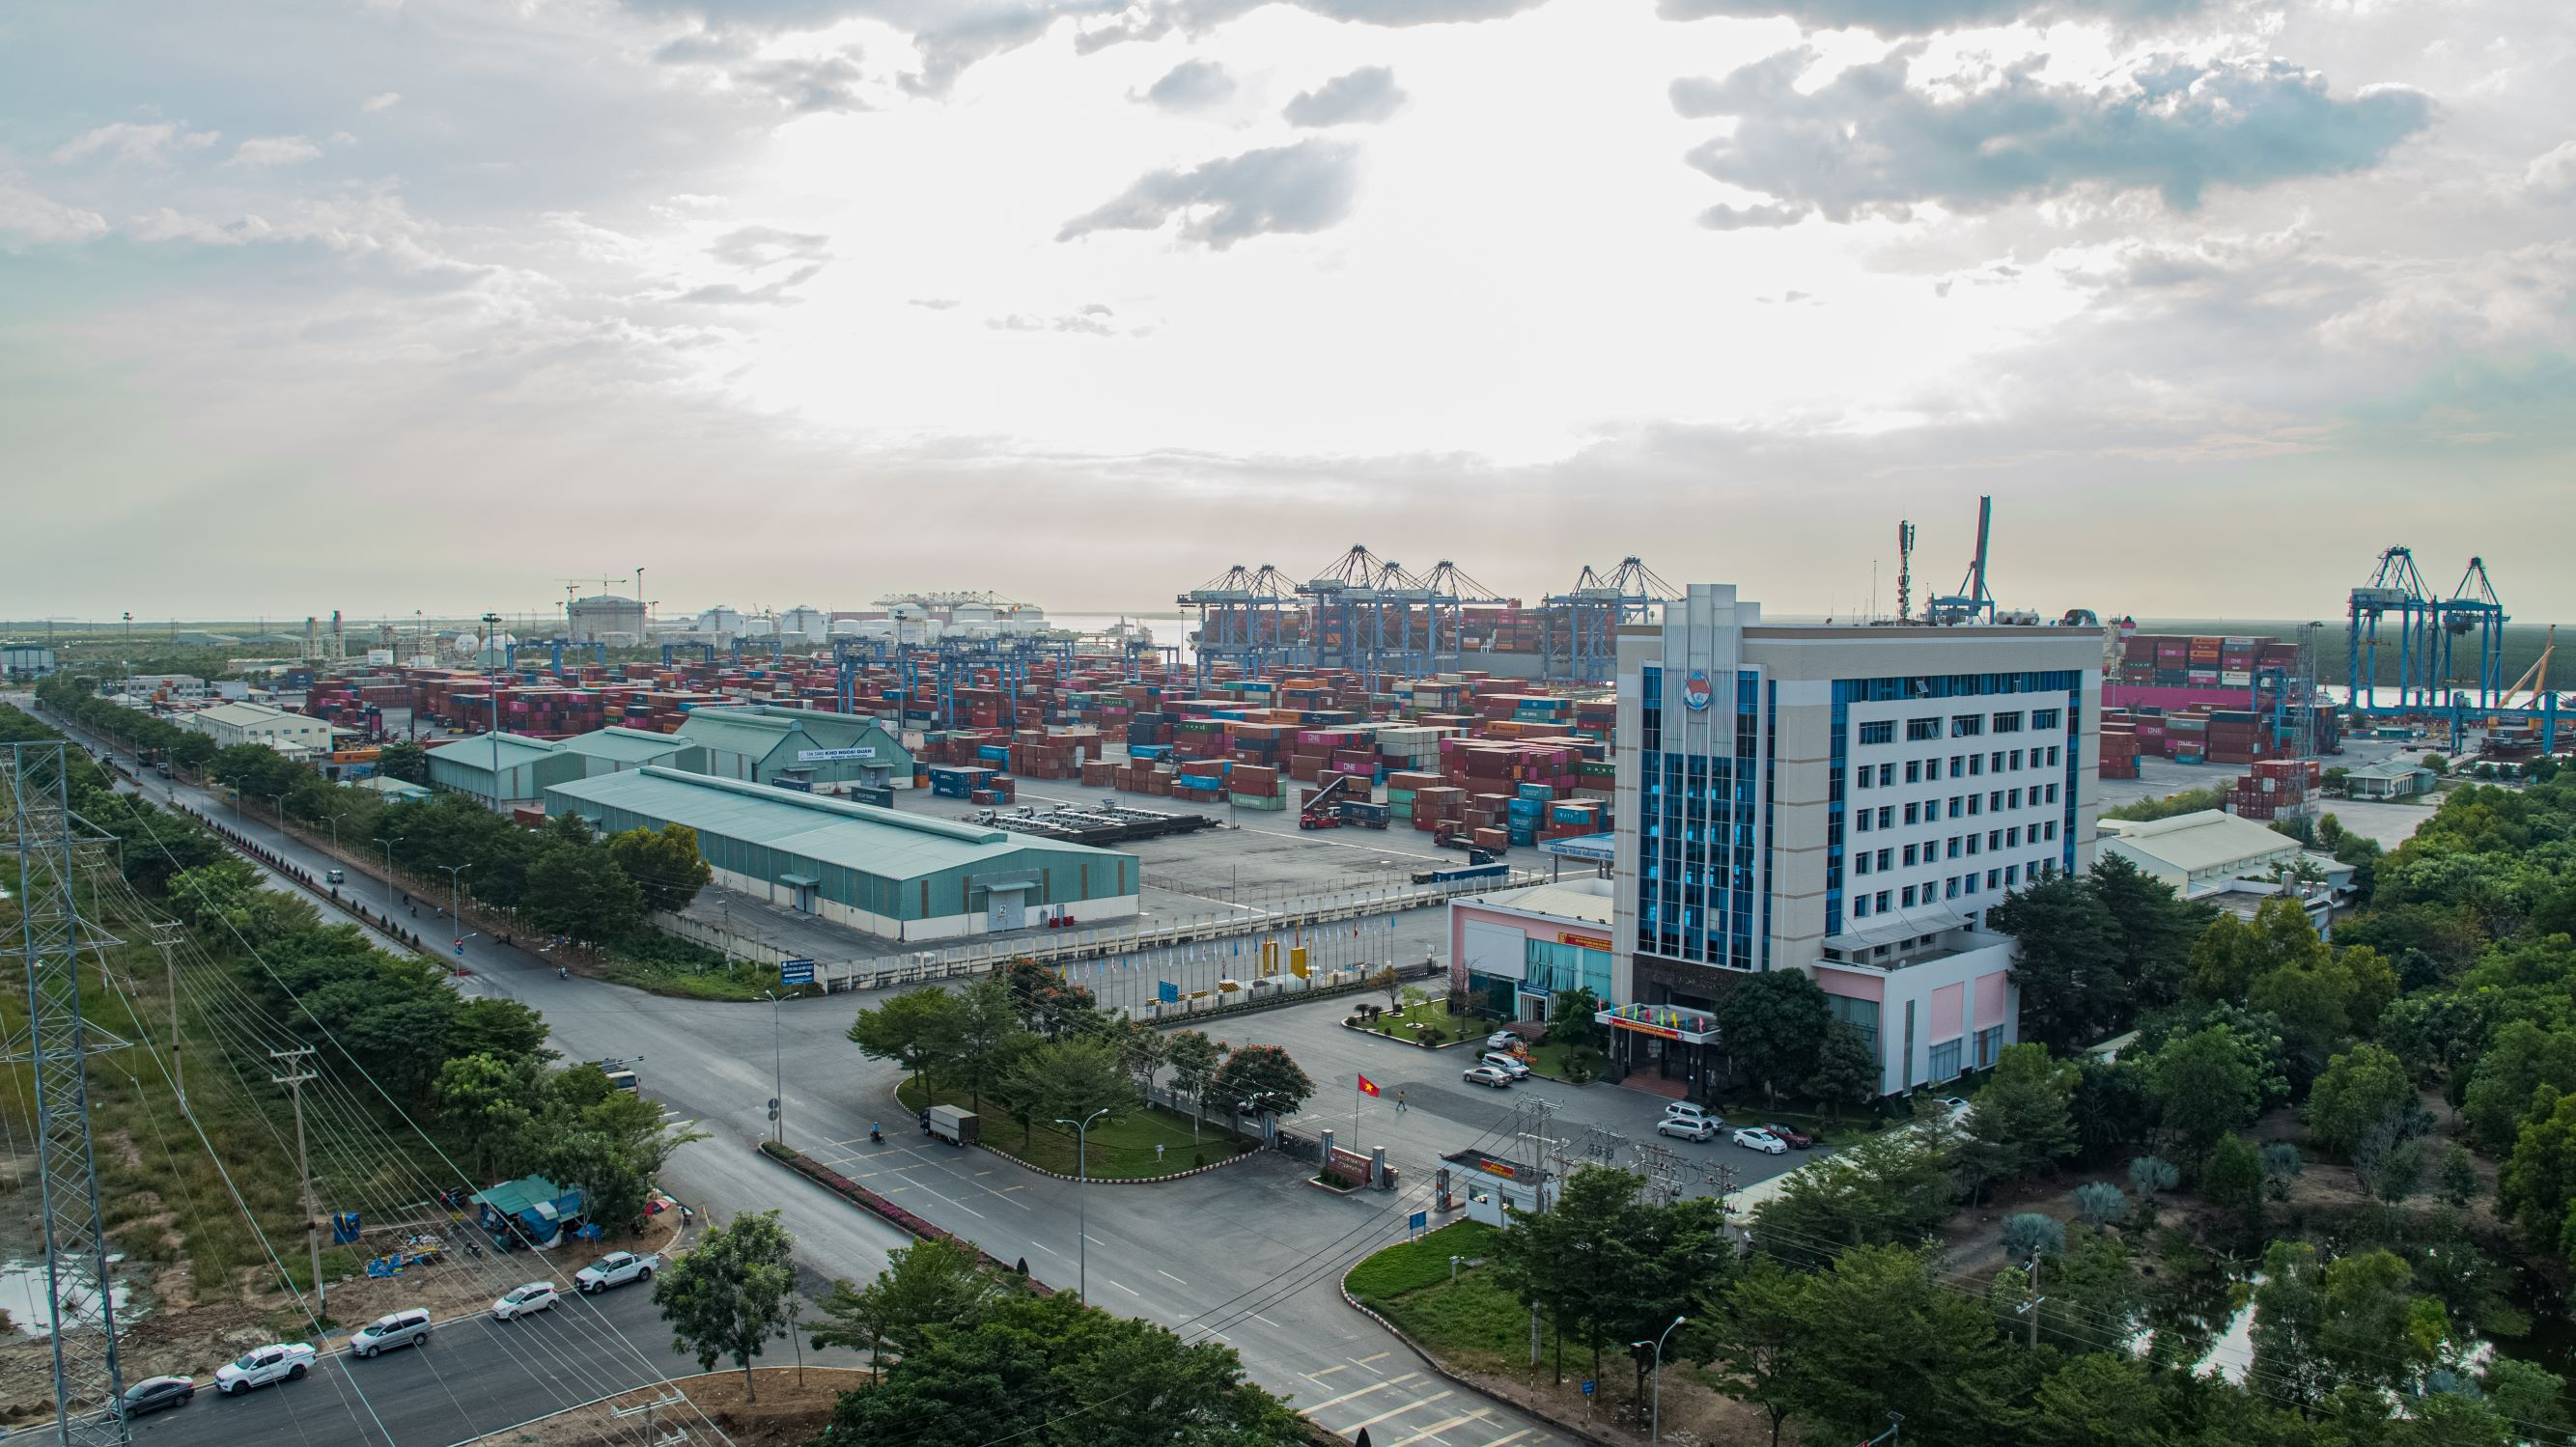 TAN CANG – CAI MEP INTERNATIONAL TERMINAL (TCIT) AWARDED GREEN PORT 2020 BY THE APEC PORTS SERVICE NETWORK (APSN) COUNCIL